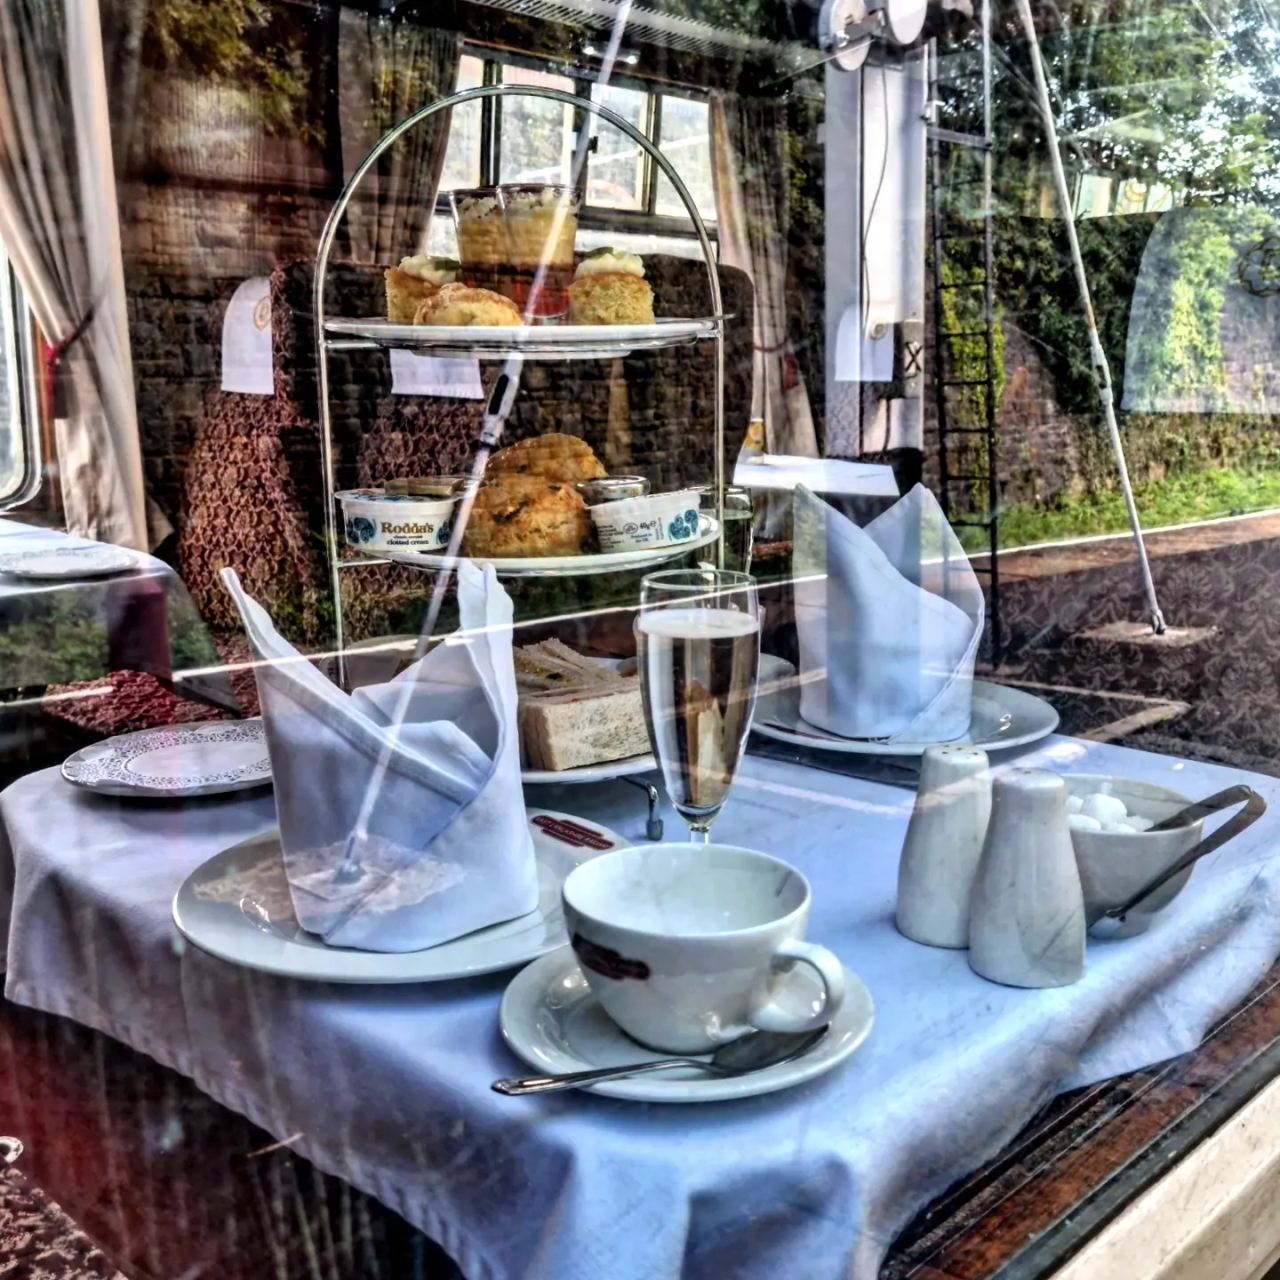 Around the World in 80 Cakes #19 Afternoon Tea byTrain